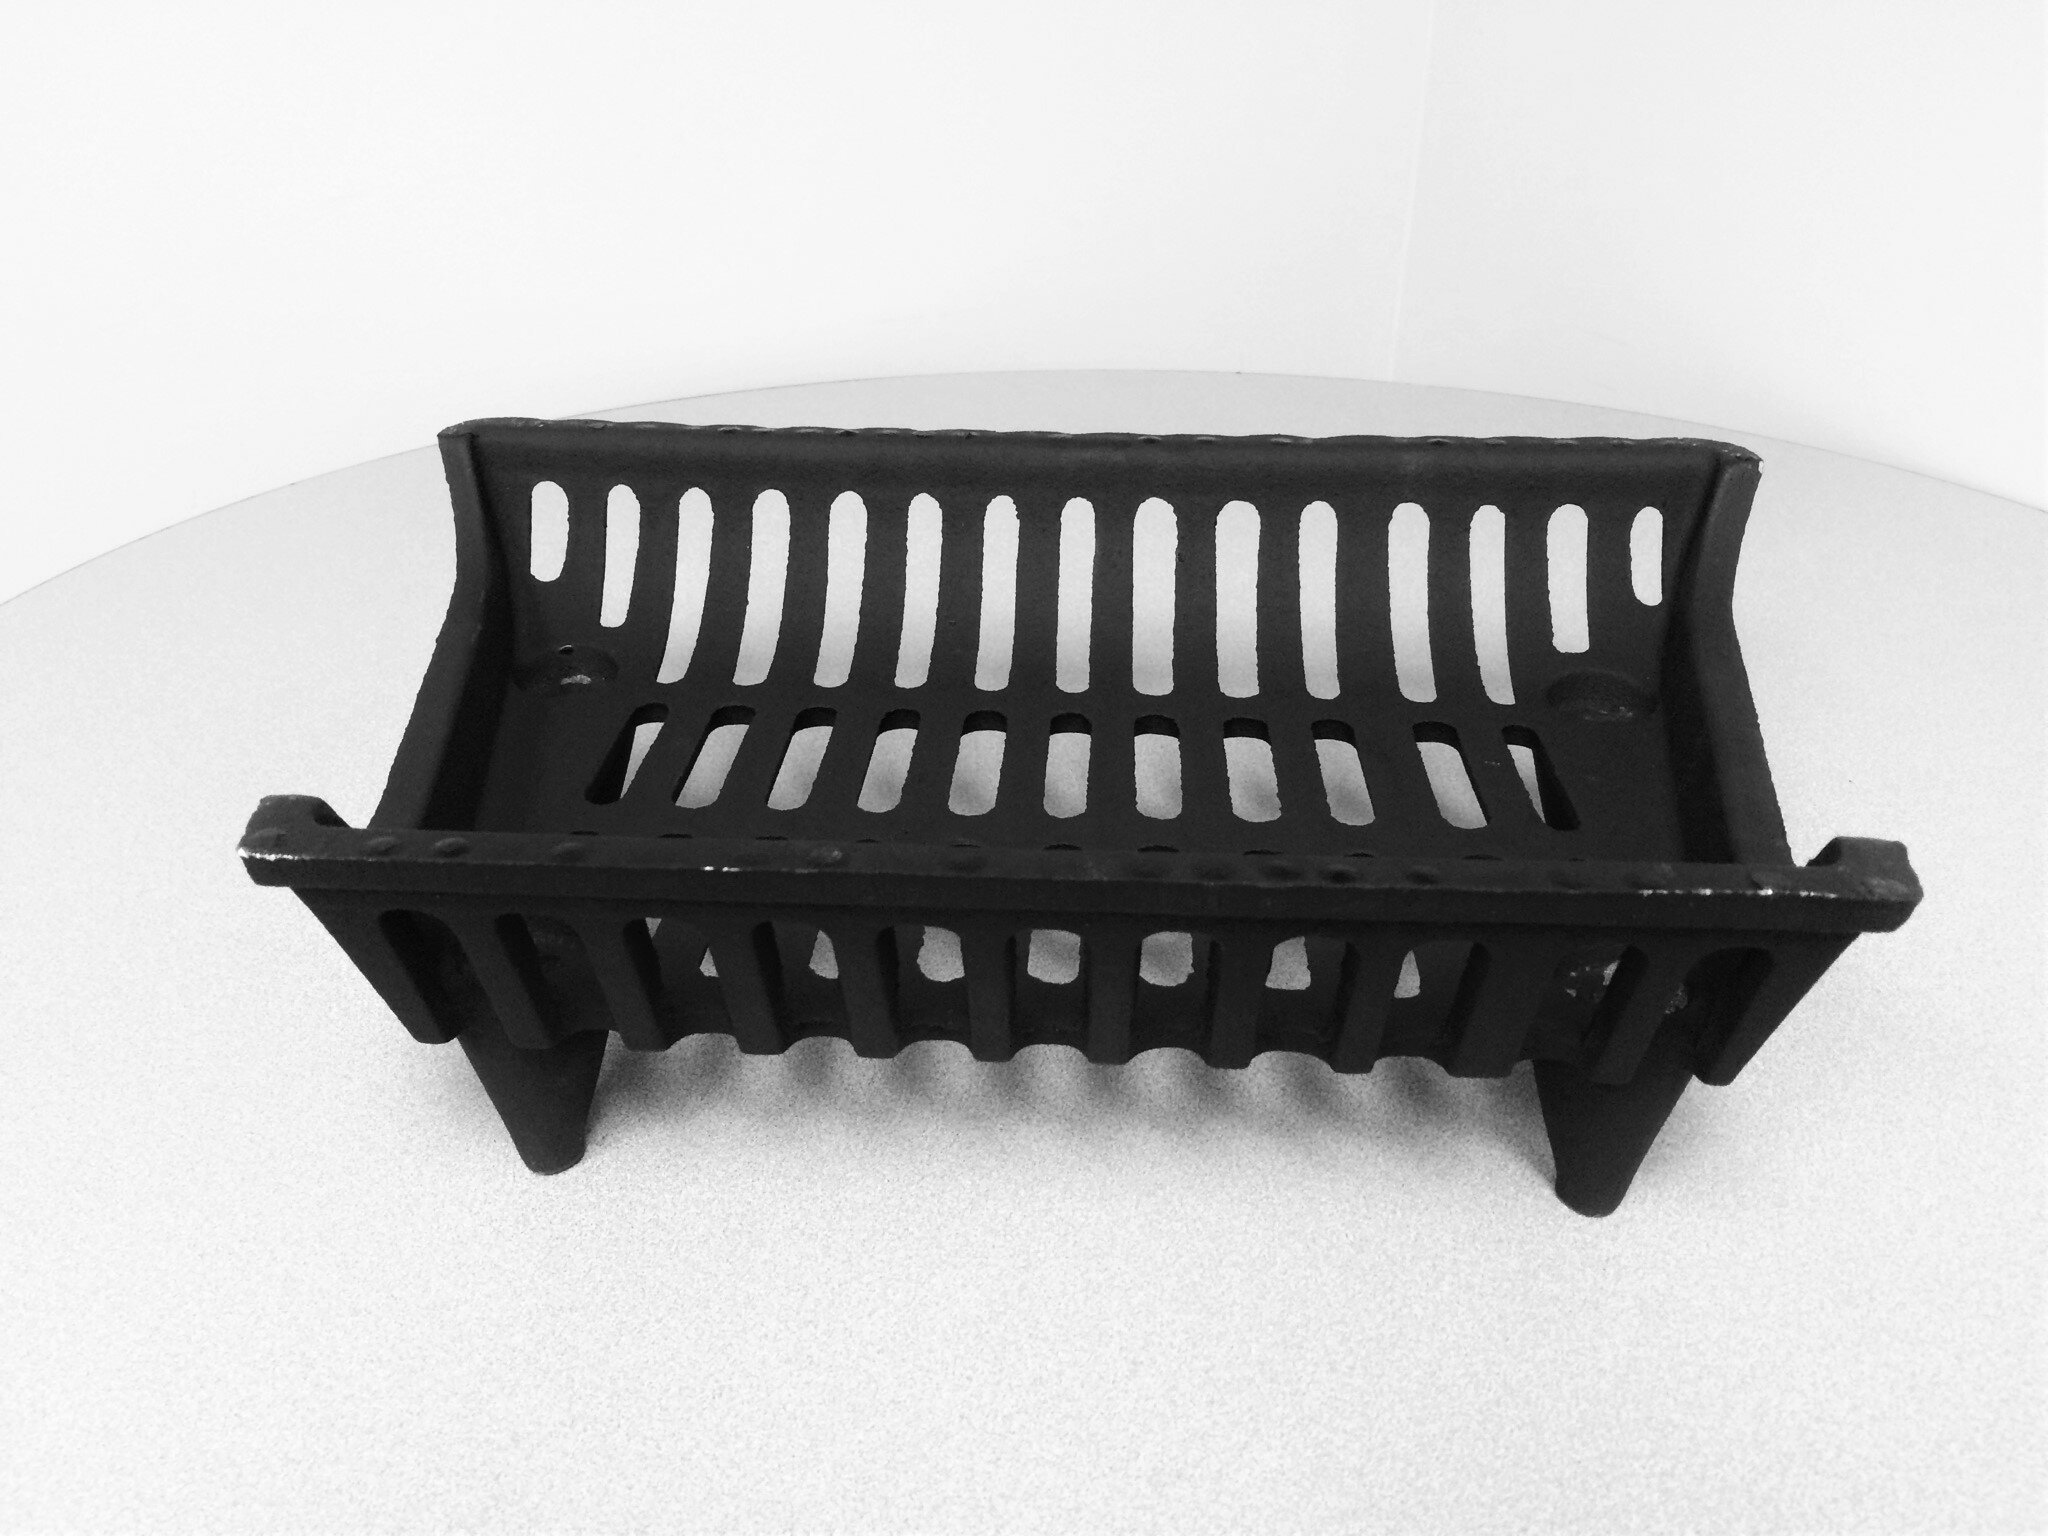 s fireplace cast by iron for grate heritage htm baskets britain adam style sale fire firebasket new